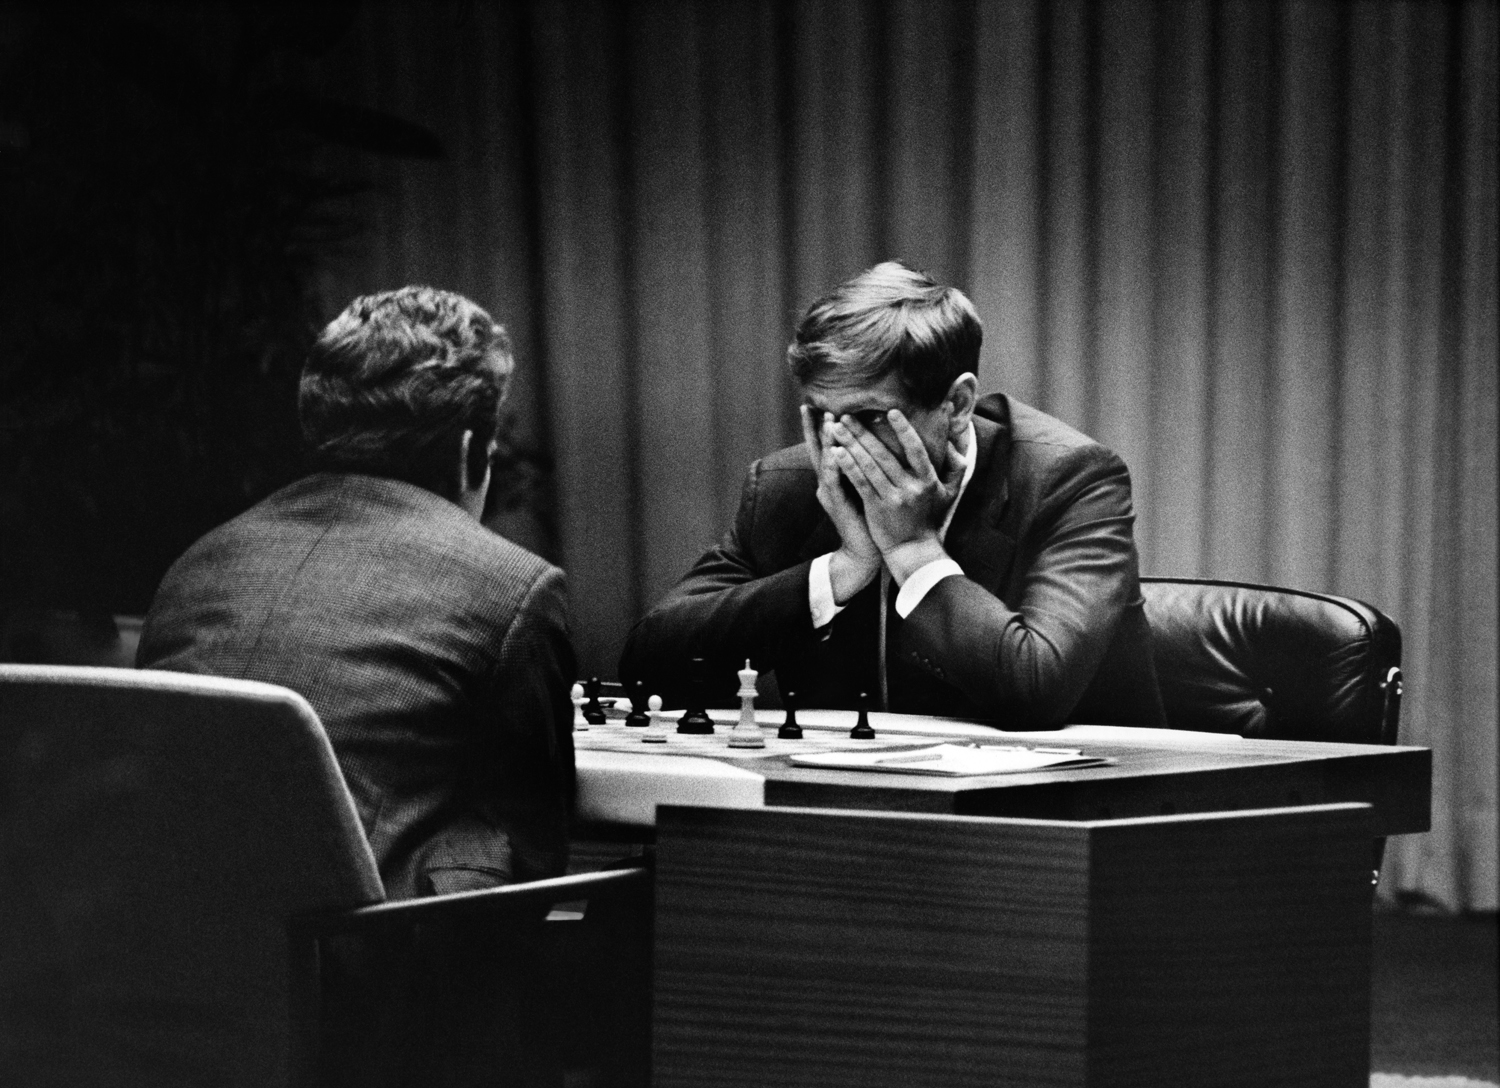 Fischer peers out of his hands during a game with Spassky at their World Championship match, Iceland, 1972